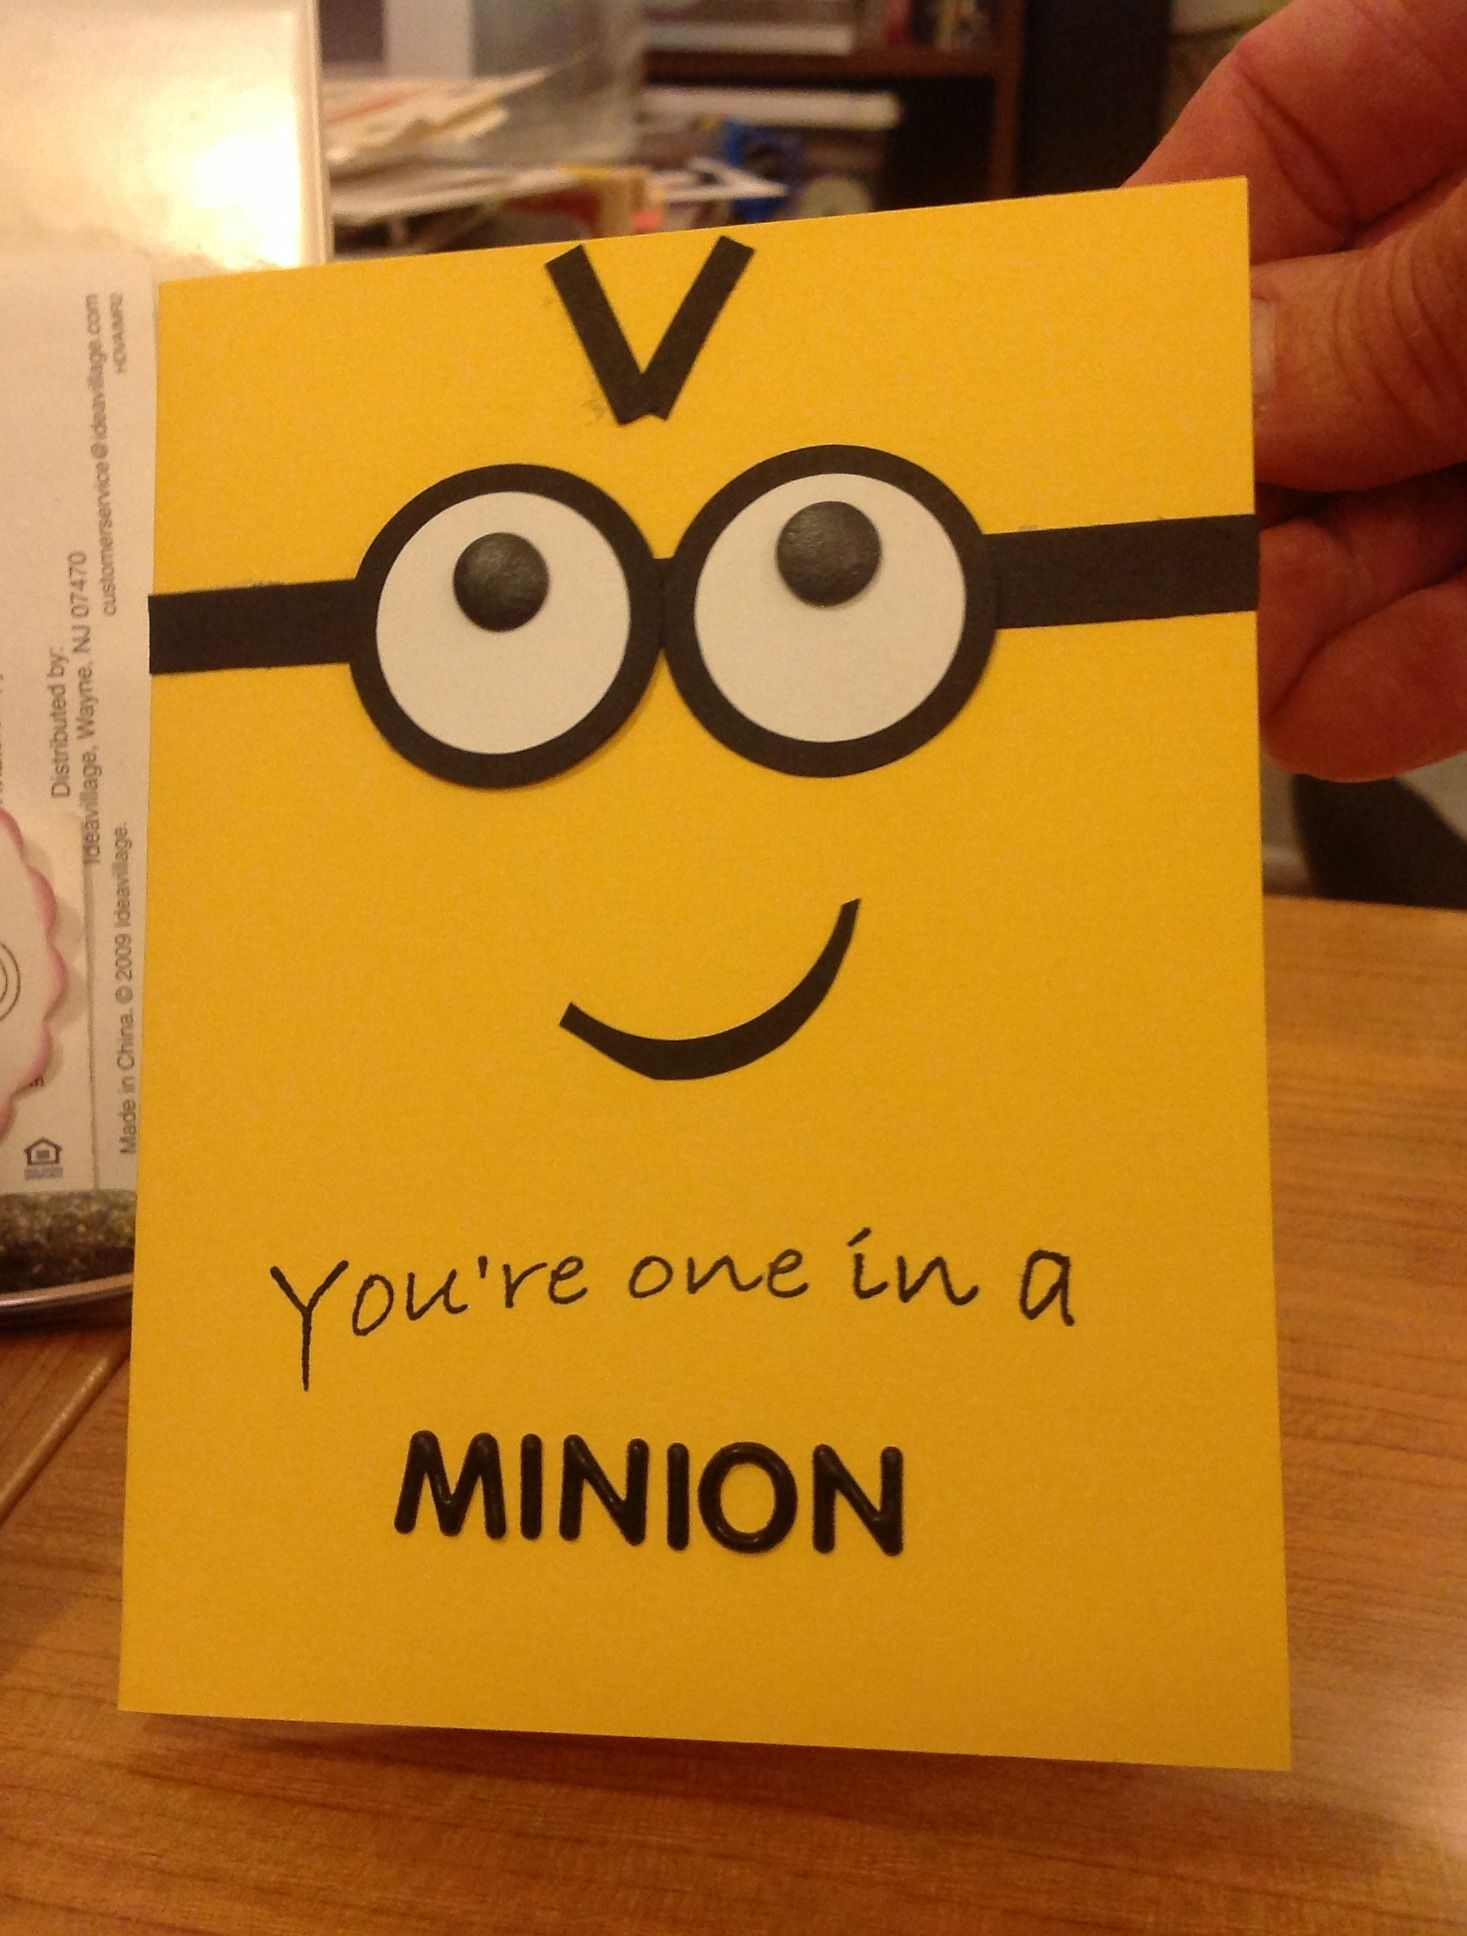 image about Free Printable Minions Birthday Card named Minion birthday card - Enjoy the minions (even pink kinds